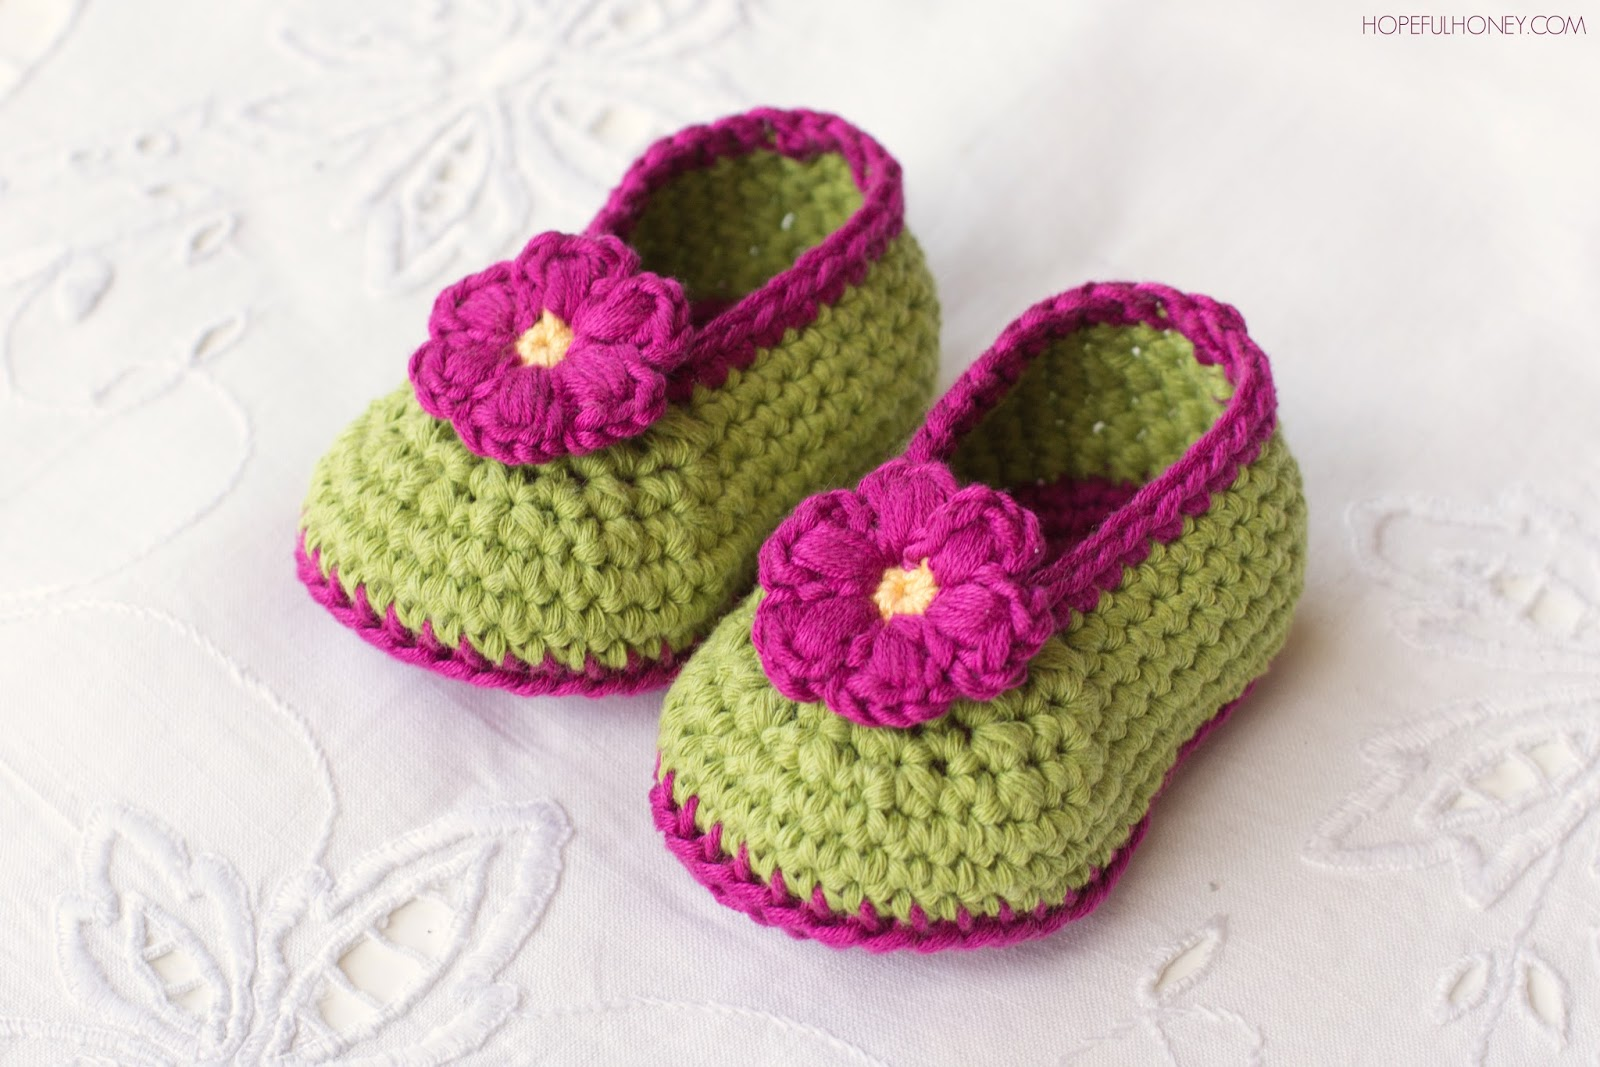 Hopeful Honey | Craft, Crochet, Create: Fairy Blossom Baby Booties ...